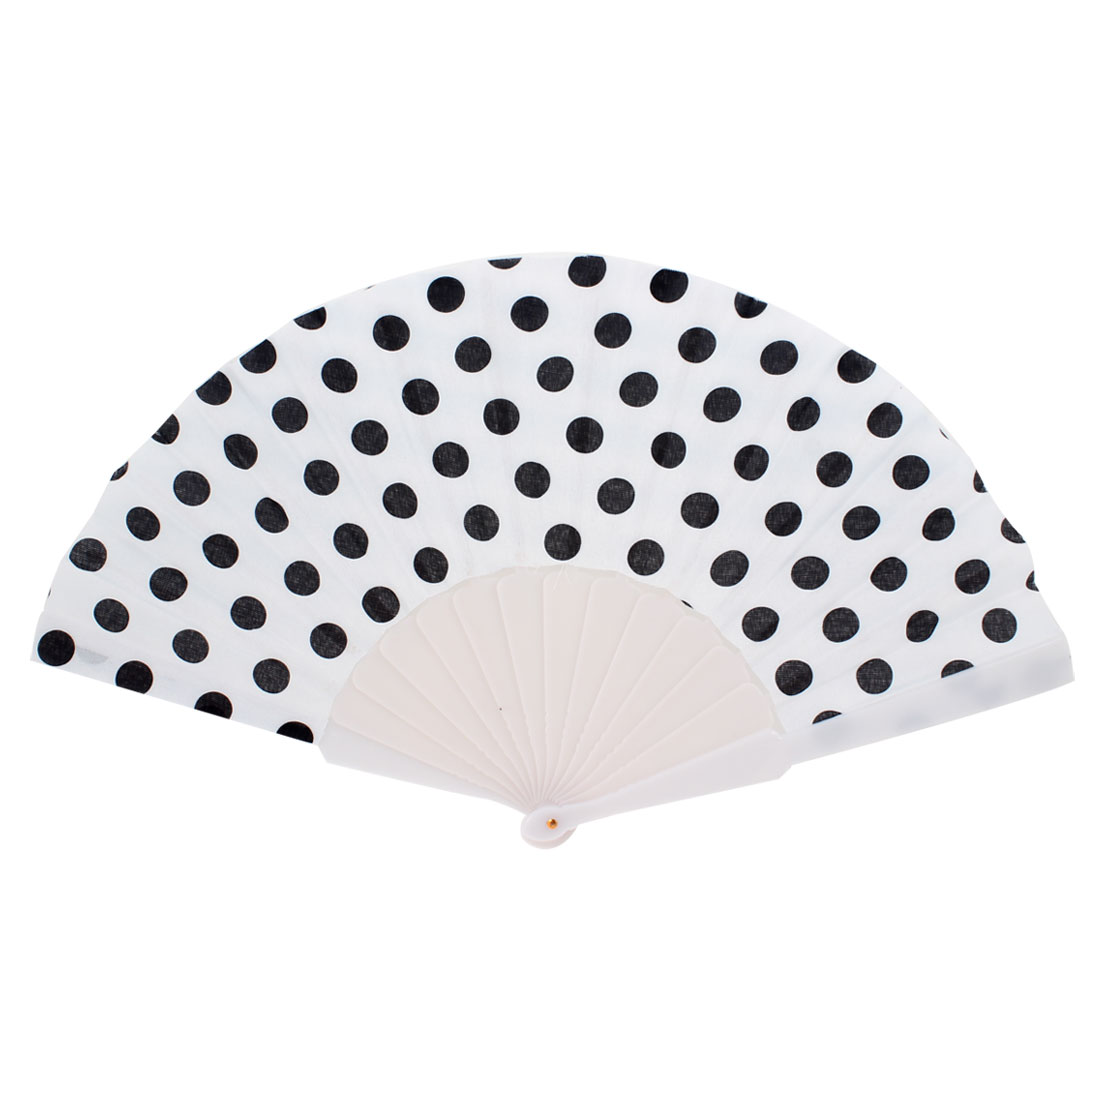 Black Dotted Print Plastic Fabric White Hand Folding Fan for Lady